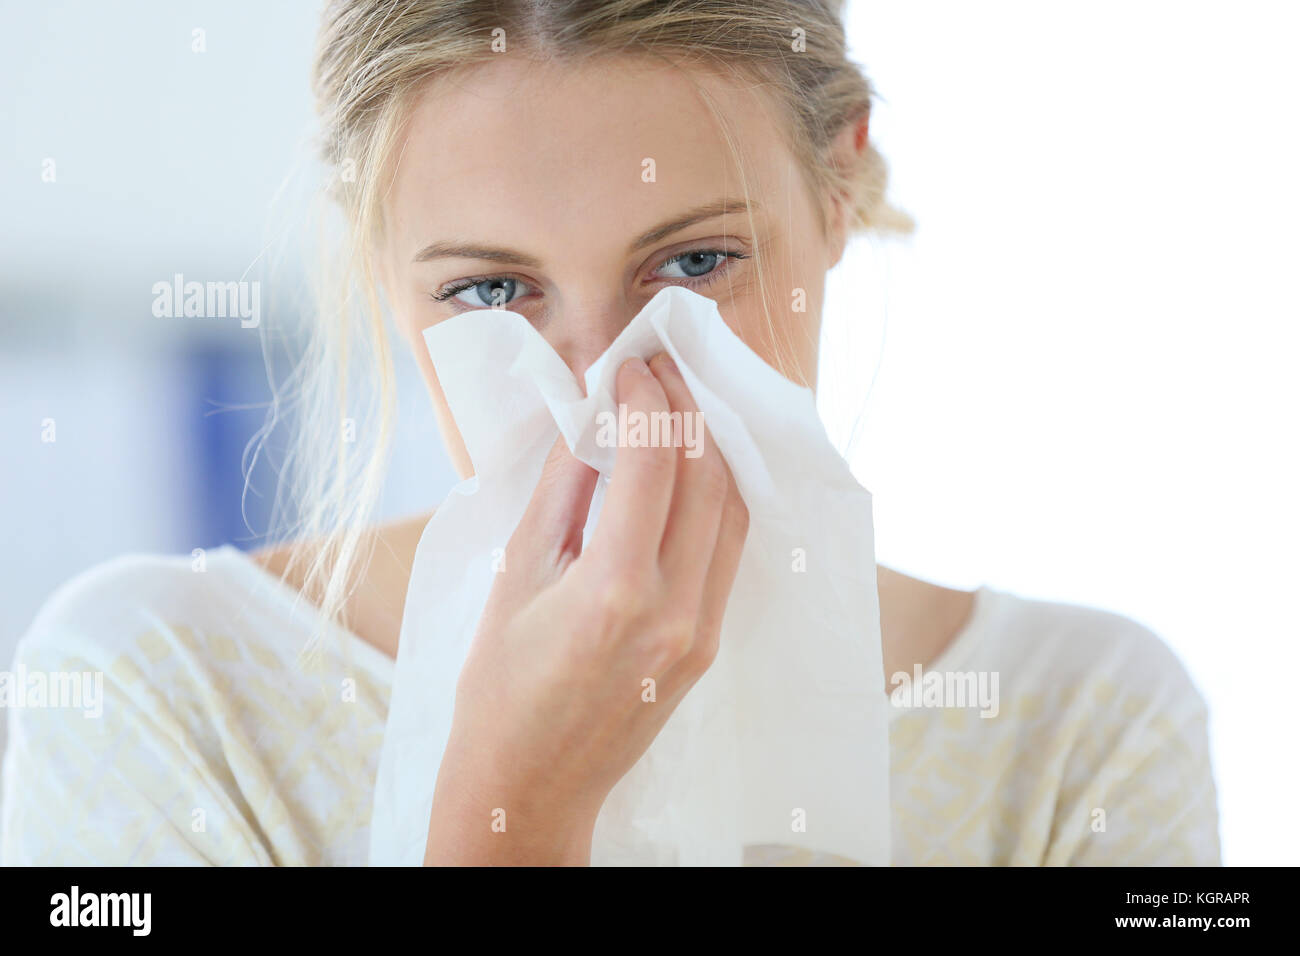 Runny Nose Stock Photos Amp Runny Nose Stock Images Alamy